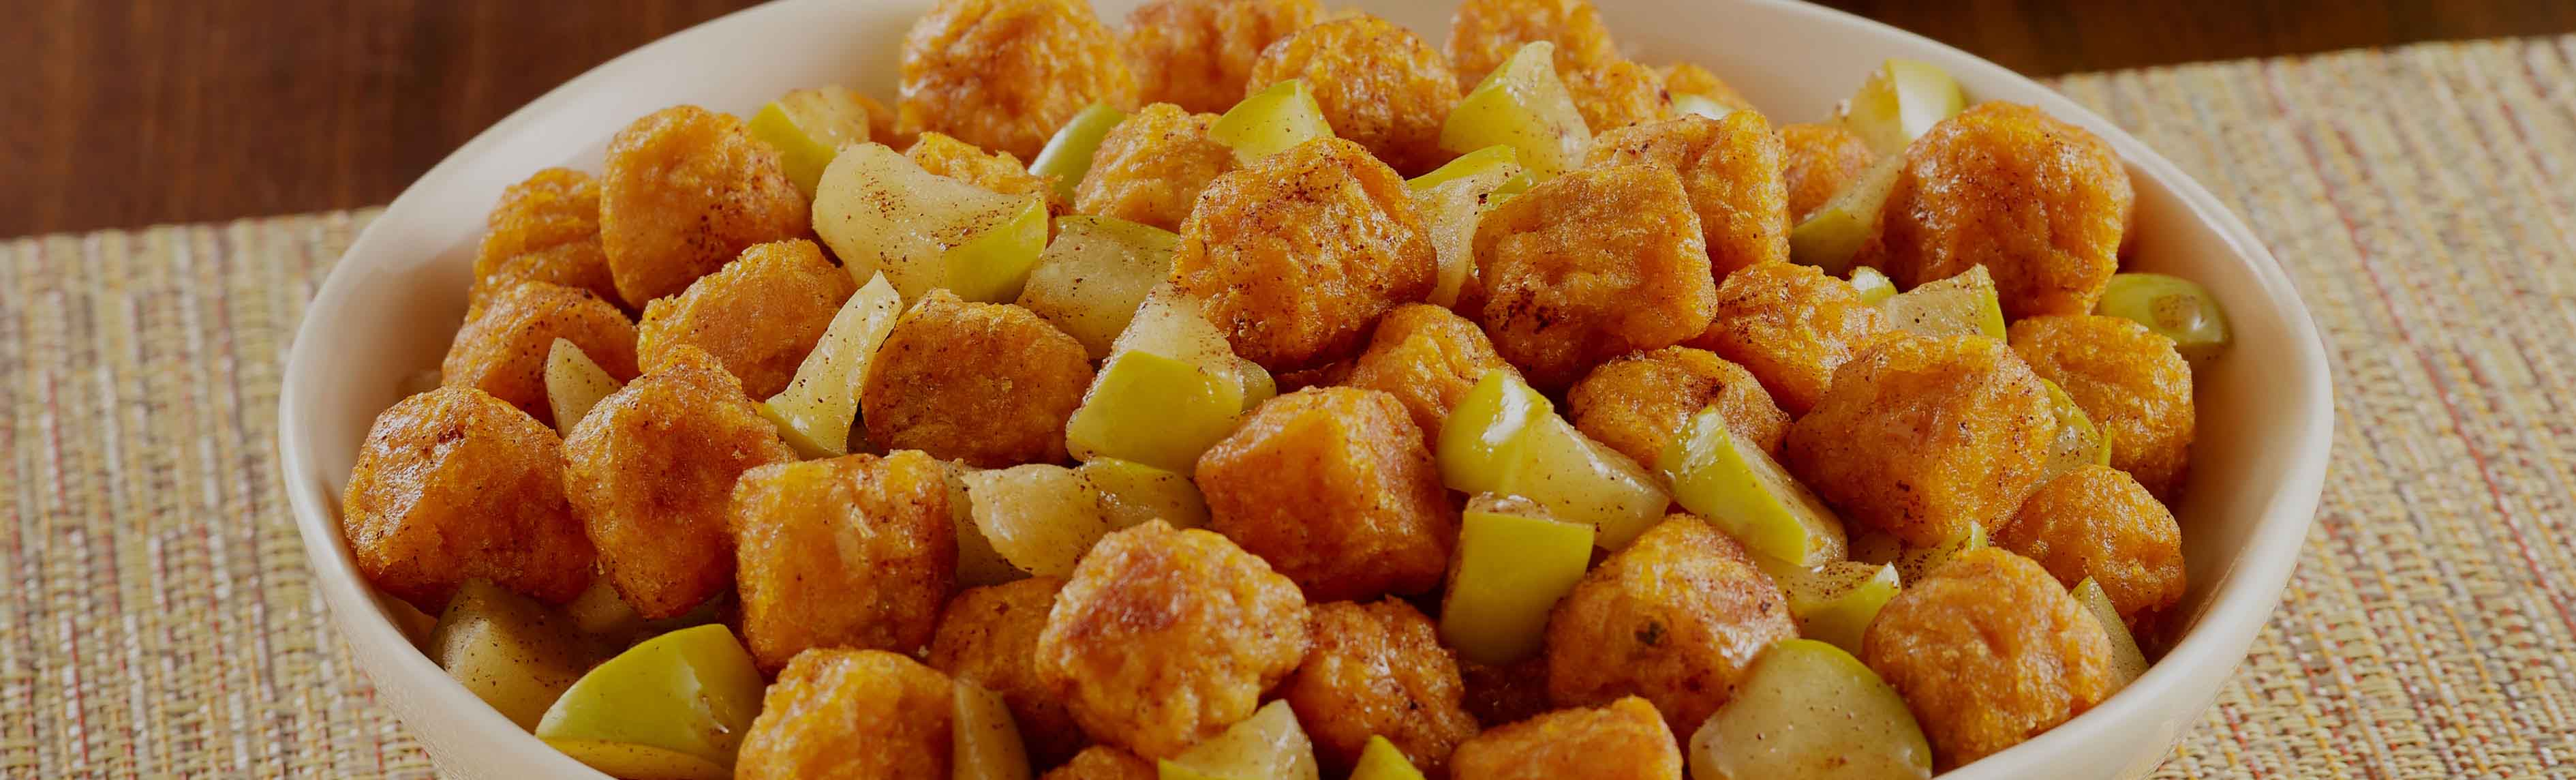 Sweet Potato Puffs with Apples